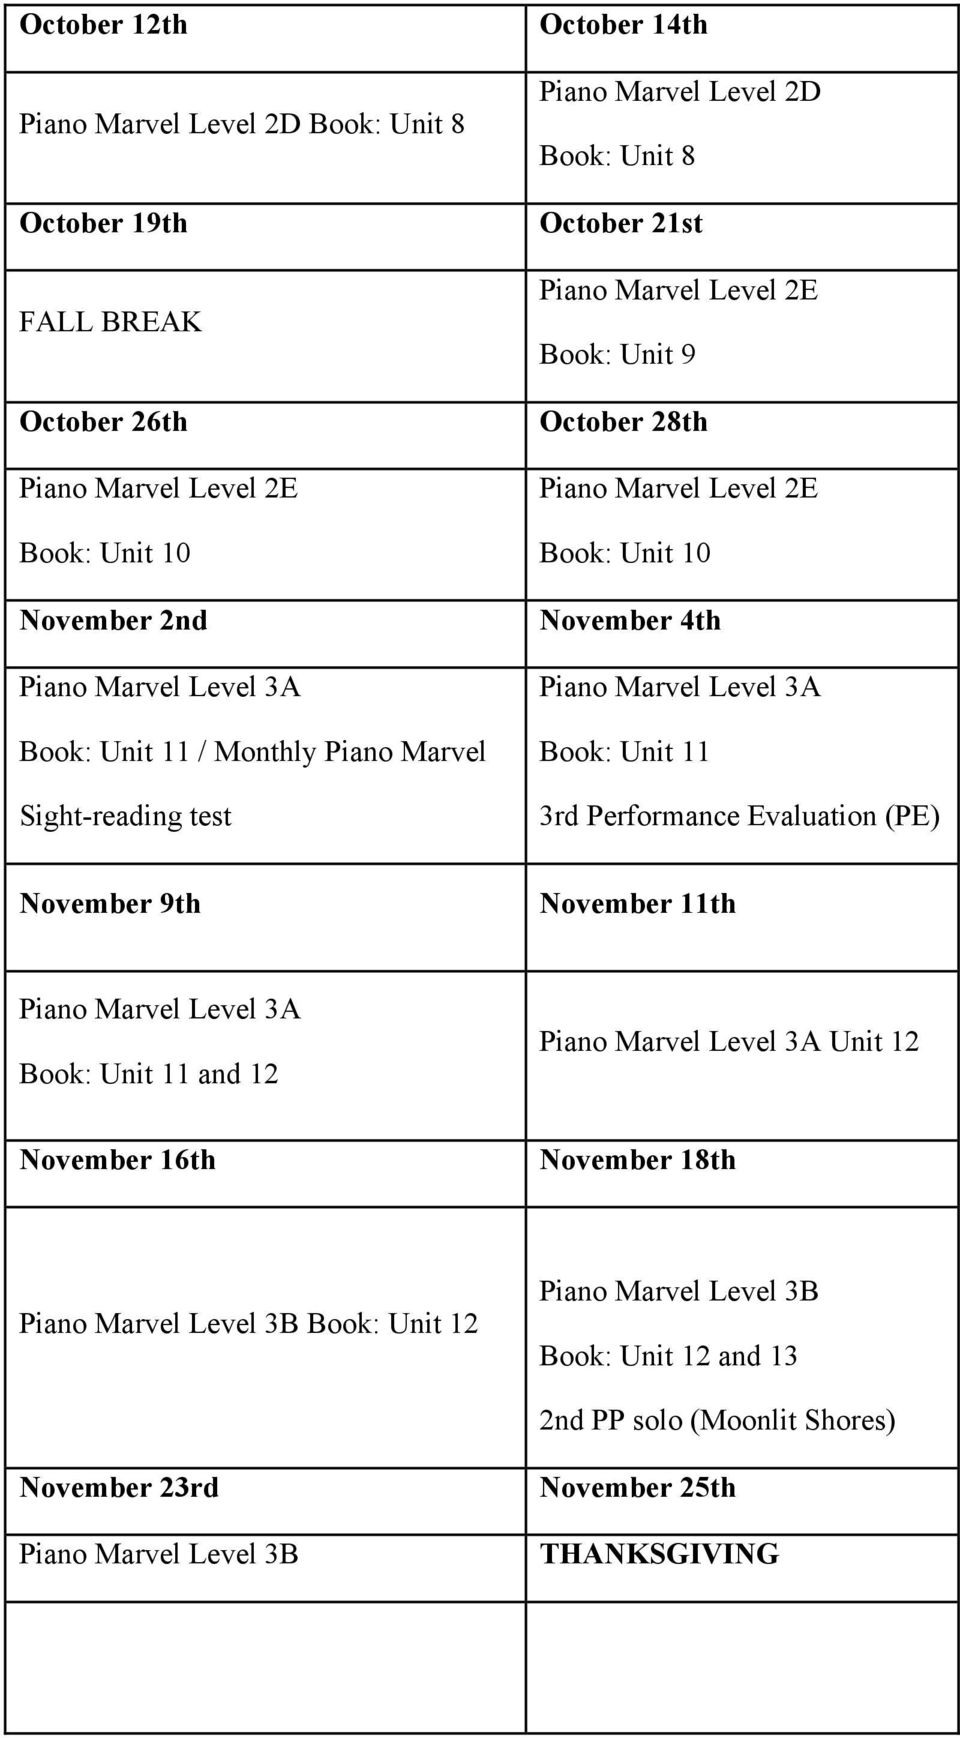 November 4th Piano Marvel Level 3A Book: Unit 11 3rd Performance Evaluation (PE) November 9th November 11th Piano Marvel Level 3A Book: Unit 11 and 12 November 16th Piano Marvel Level